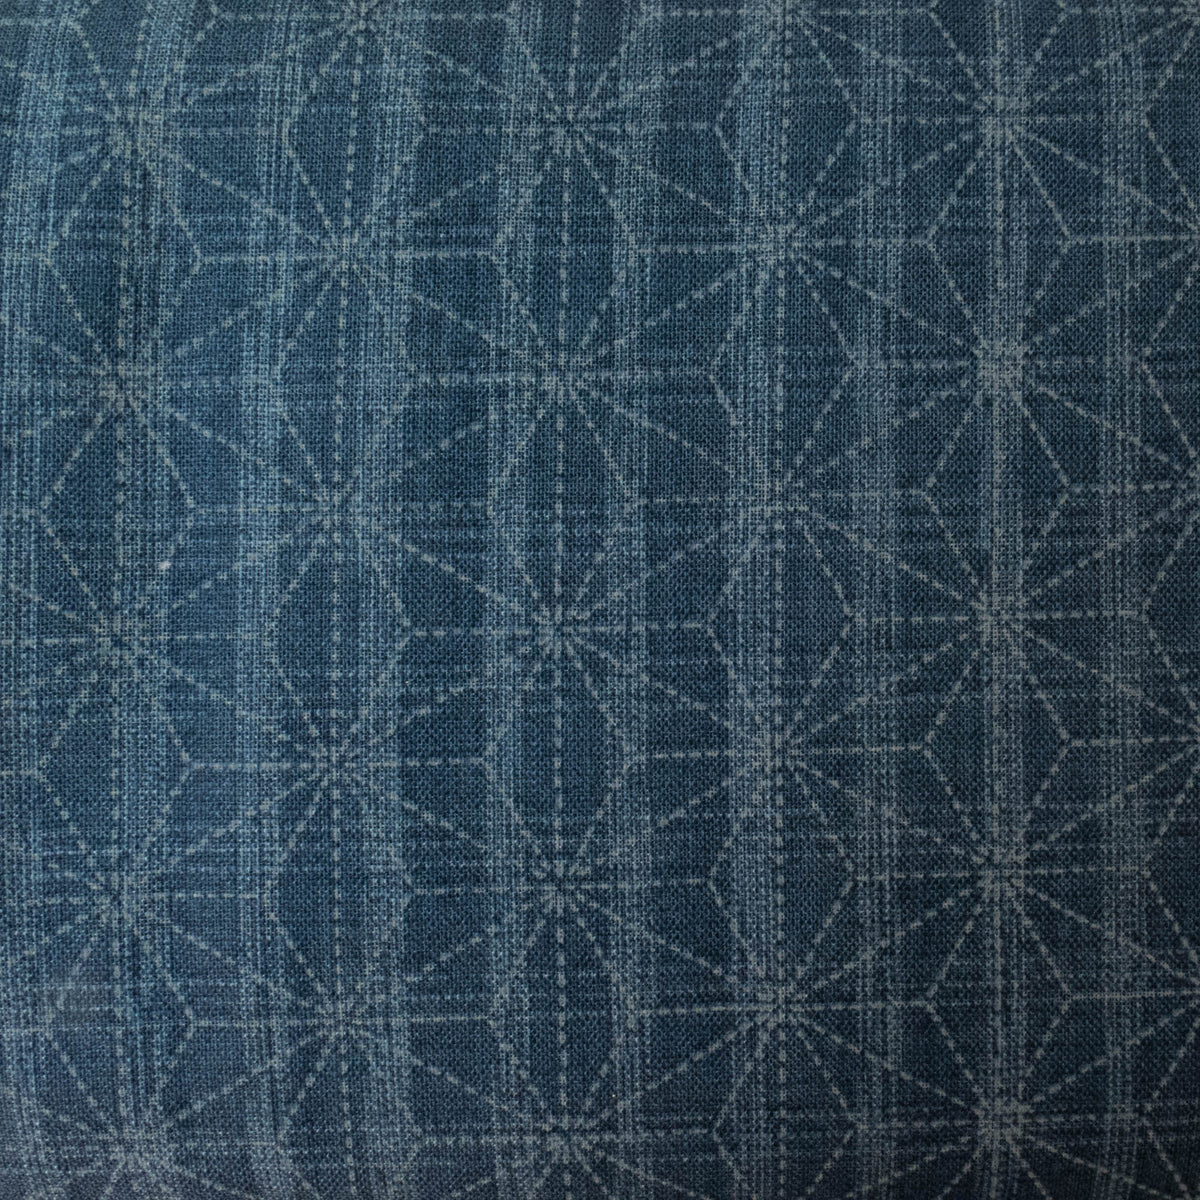 Sevenberry Nara Homespun :: Denim Hemp Leaf